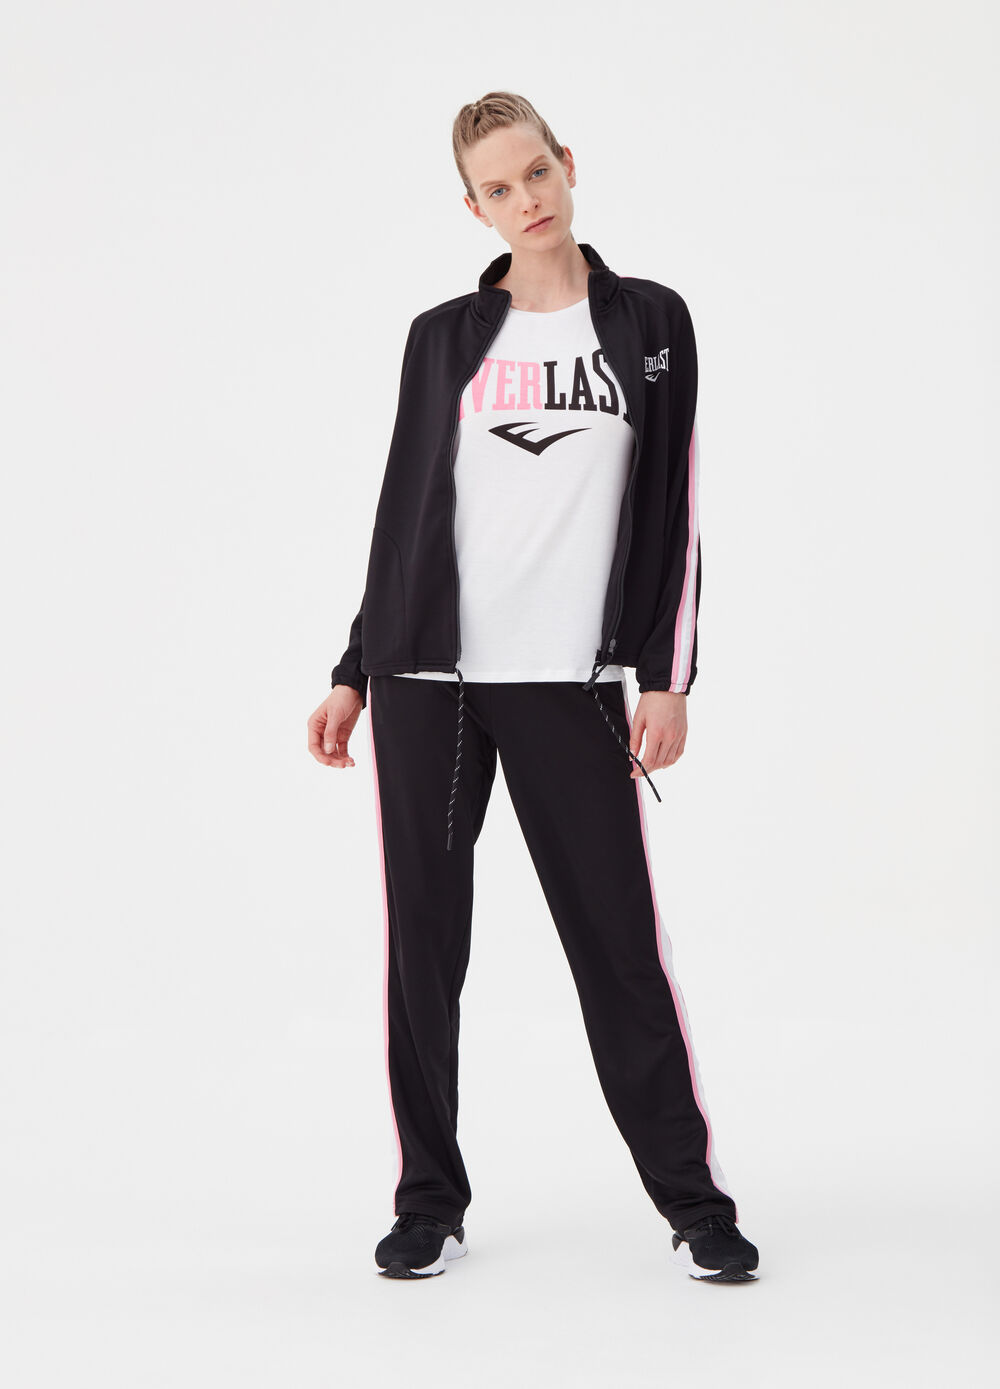 Everlast jogger trousers with striped band